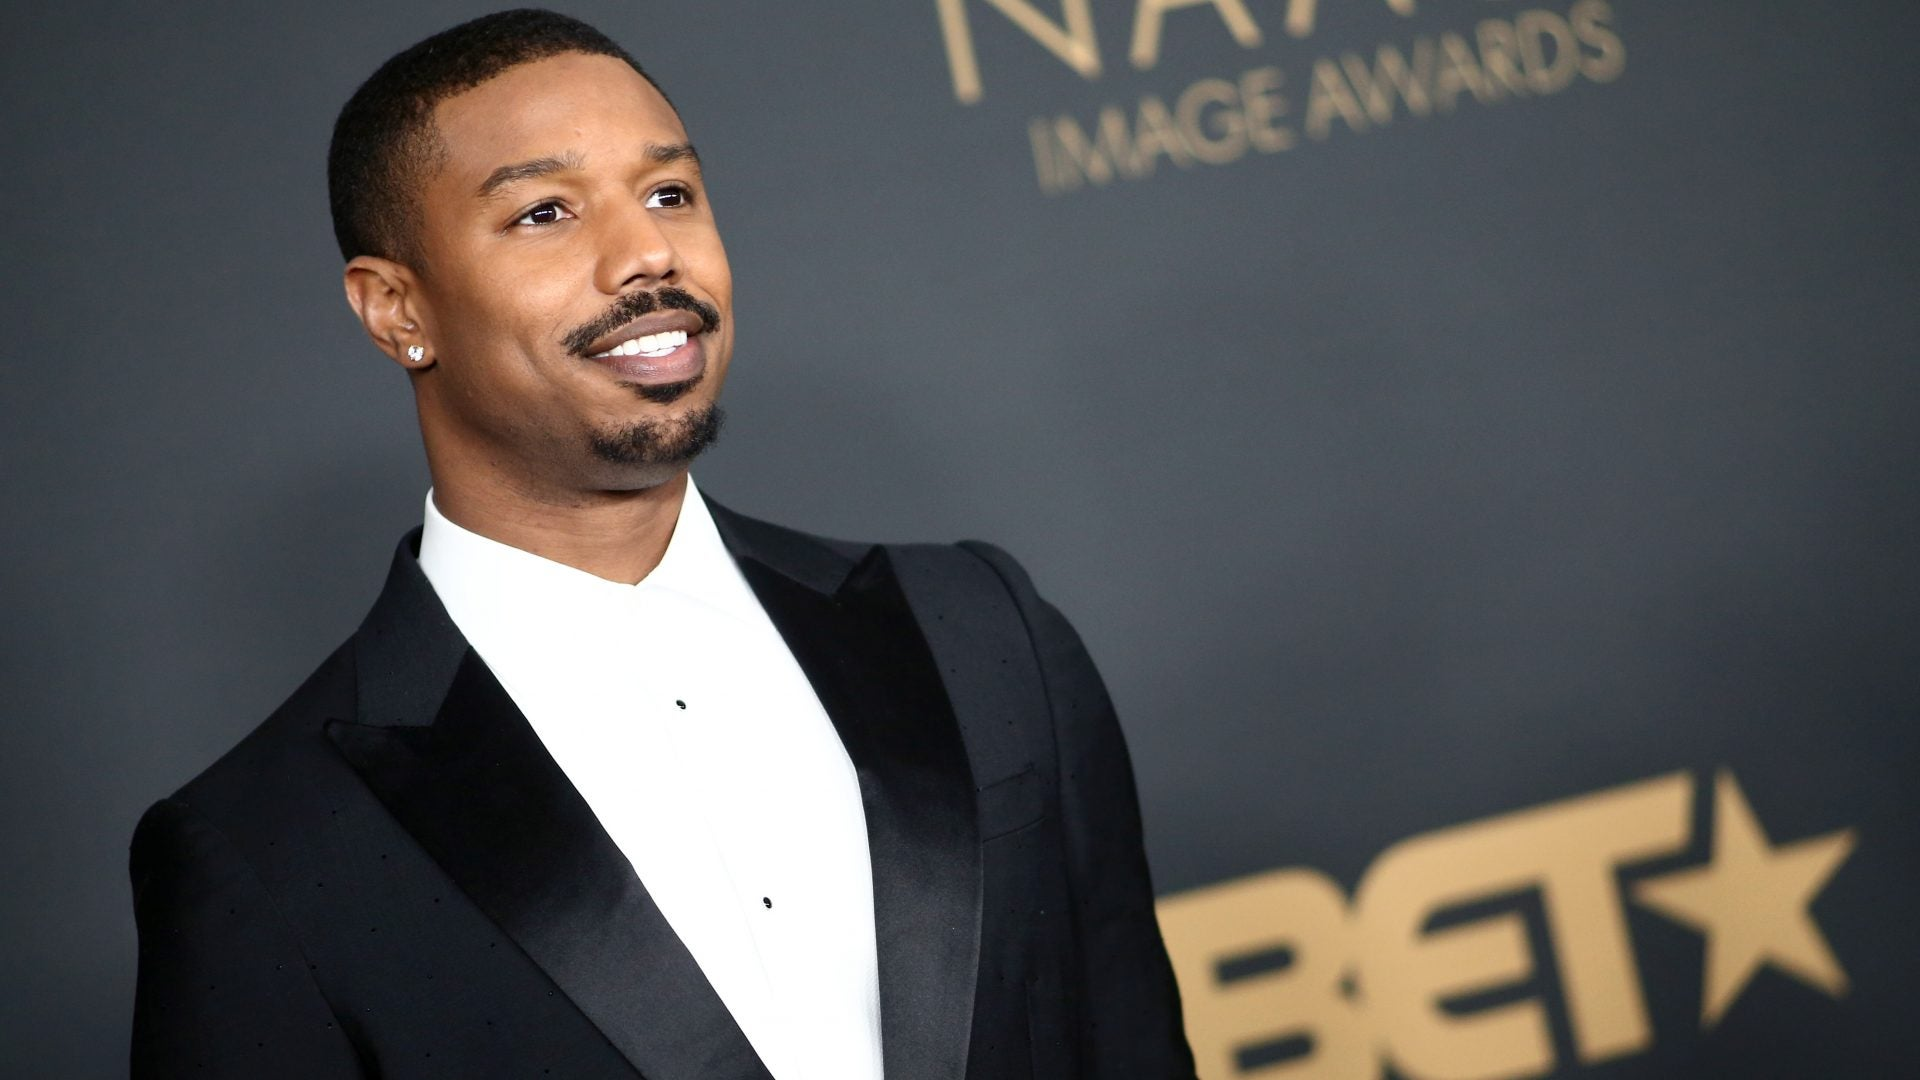 Michael B. Jordan And Amazon Are Bringing Black Movies To Drive-Ins